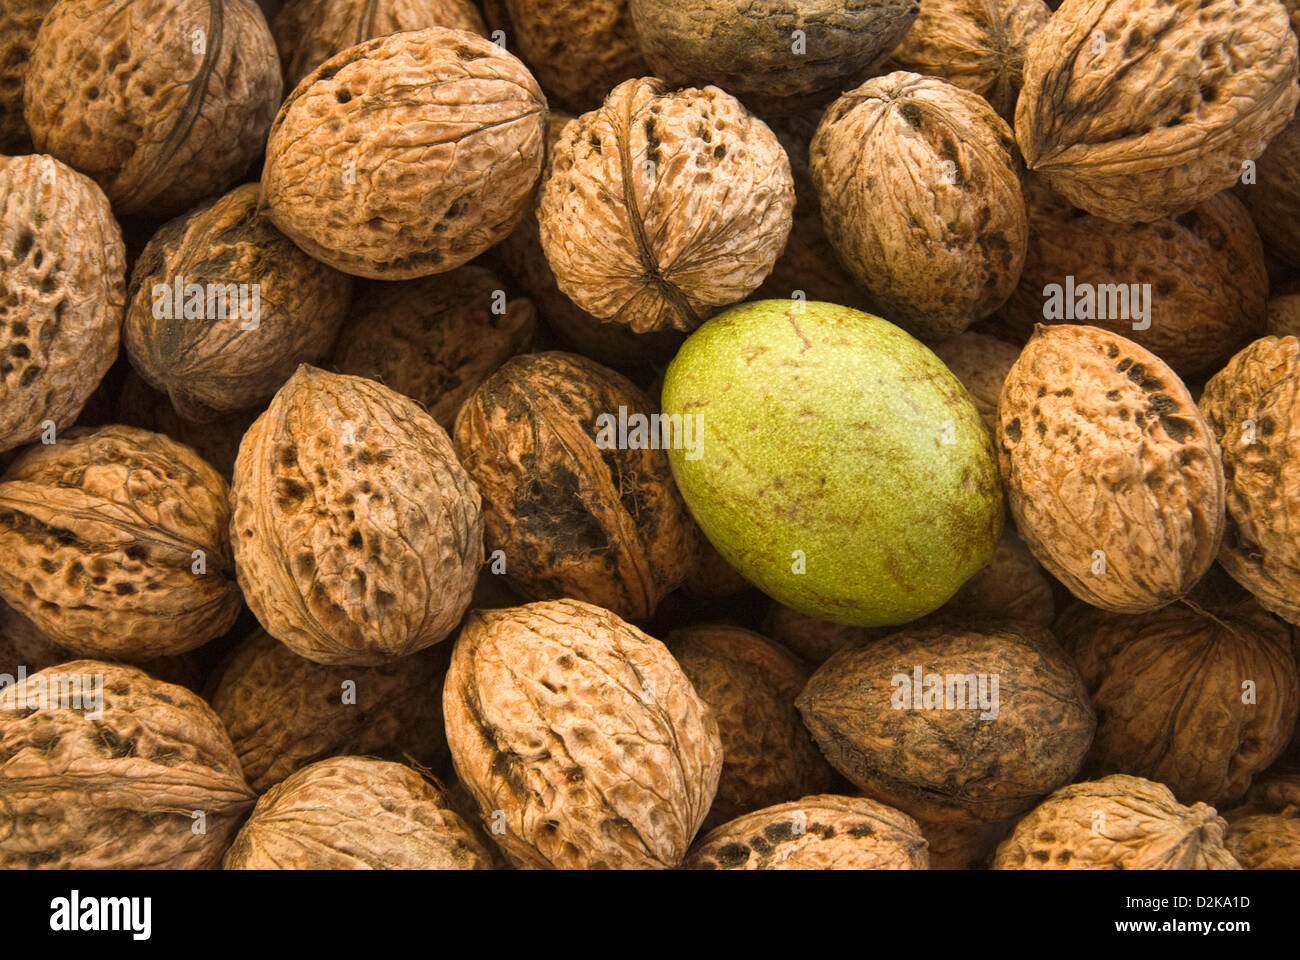 Harvested walnuts - Stock Image